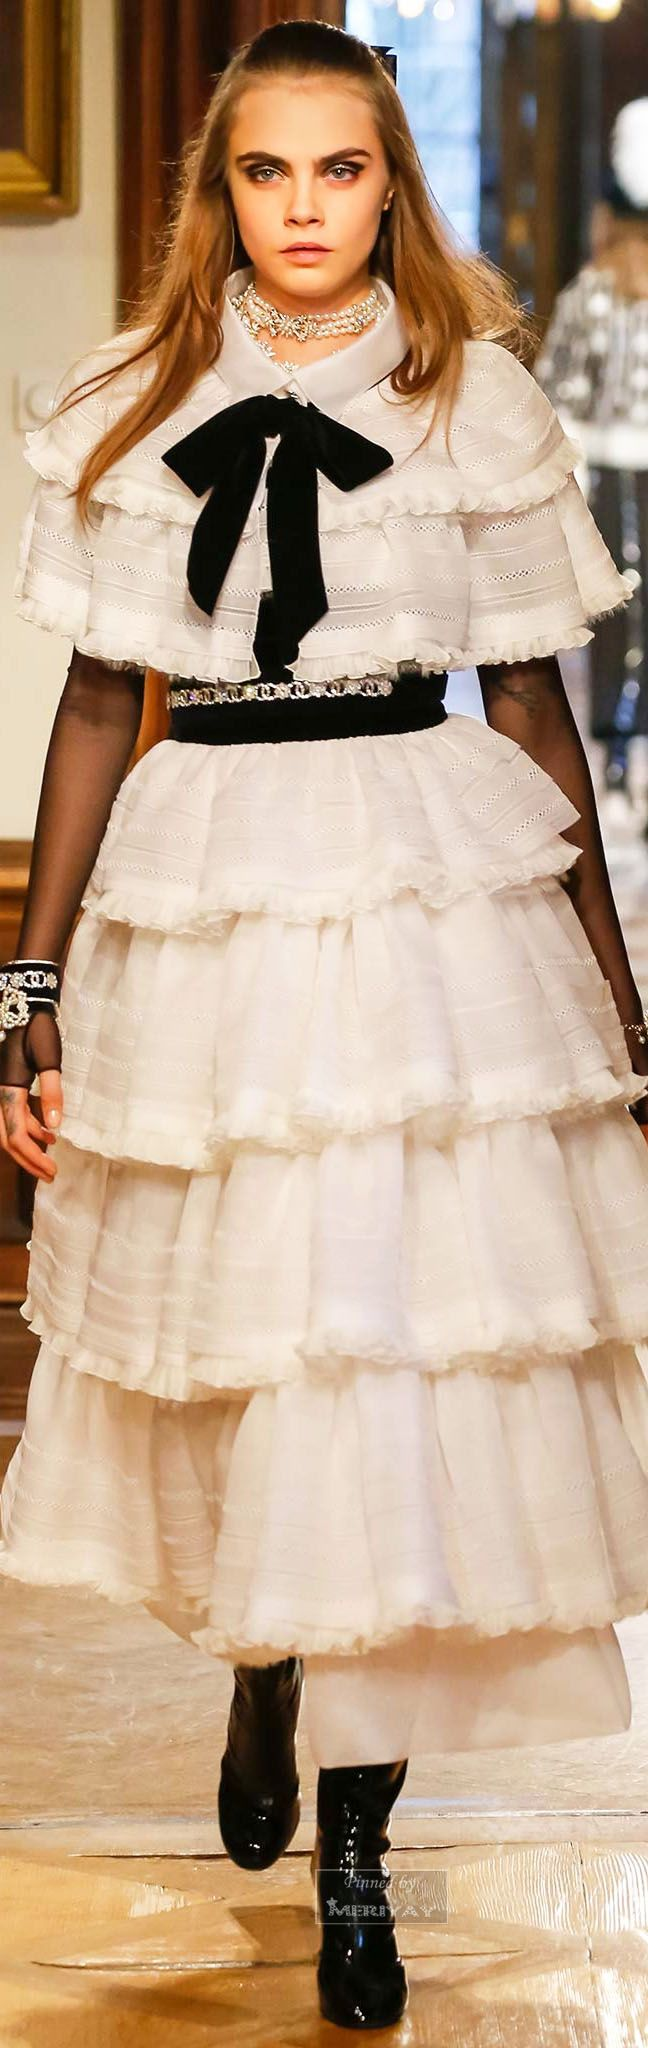 Chanel.Pre-Fall 2015. I quickly noticed the fabric and tiered appearance and thought it resembled the mid 1910s evening wear look. Such evening wear at this time held a slightly higher natural waistline with a fuller skirt made from tiers of ruffles or layering of different length fabrics. Sheer and lace were other components used in such decade evening wear. This recreated design holds similar characteristics and qualities yet is current and wearable in this era.